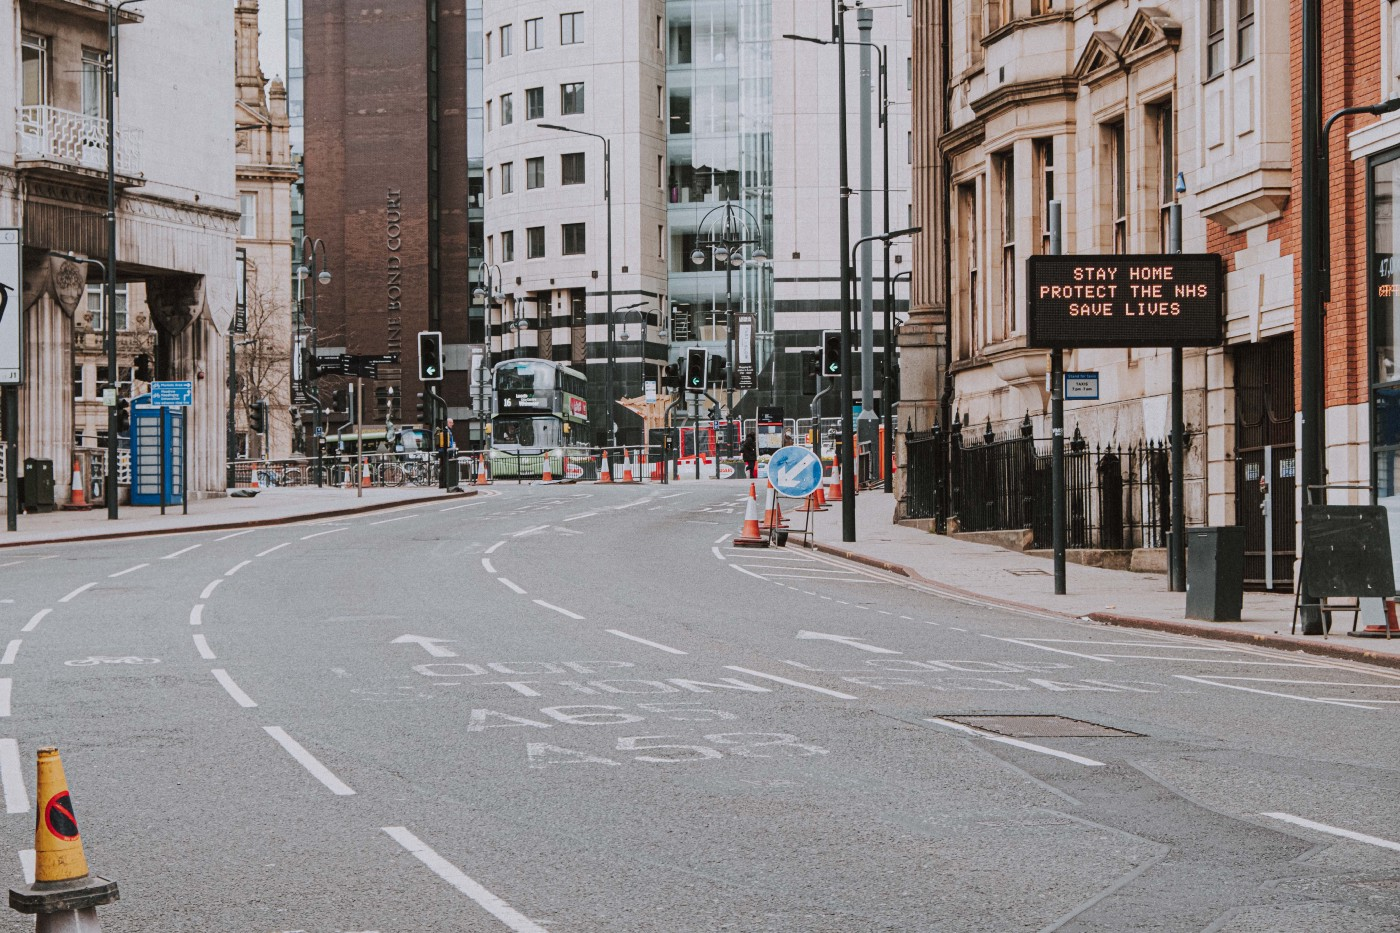 City streets are empty as lock-down measures limit the mobility and create new challenges for people with disabilities.